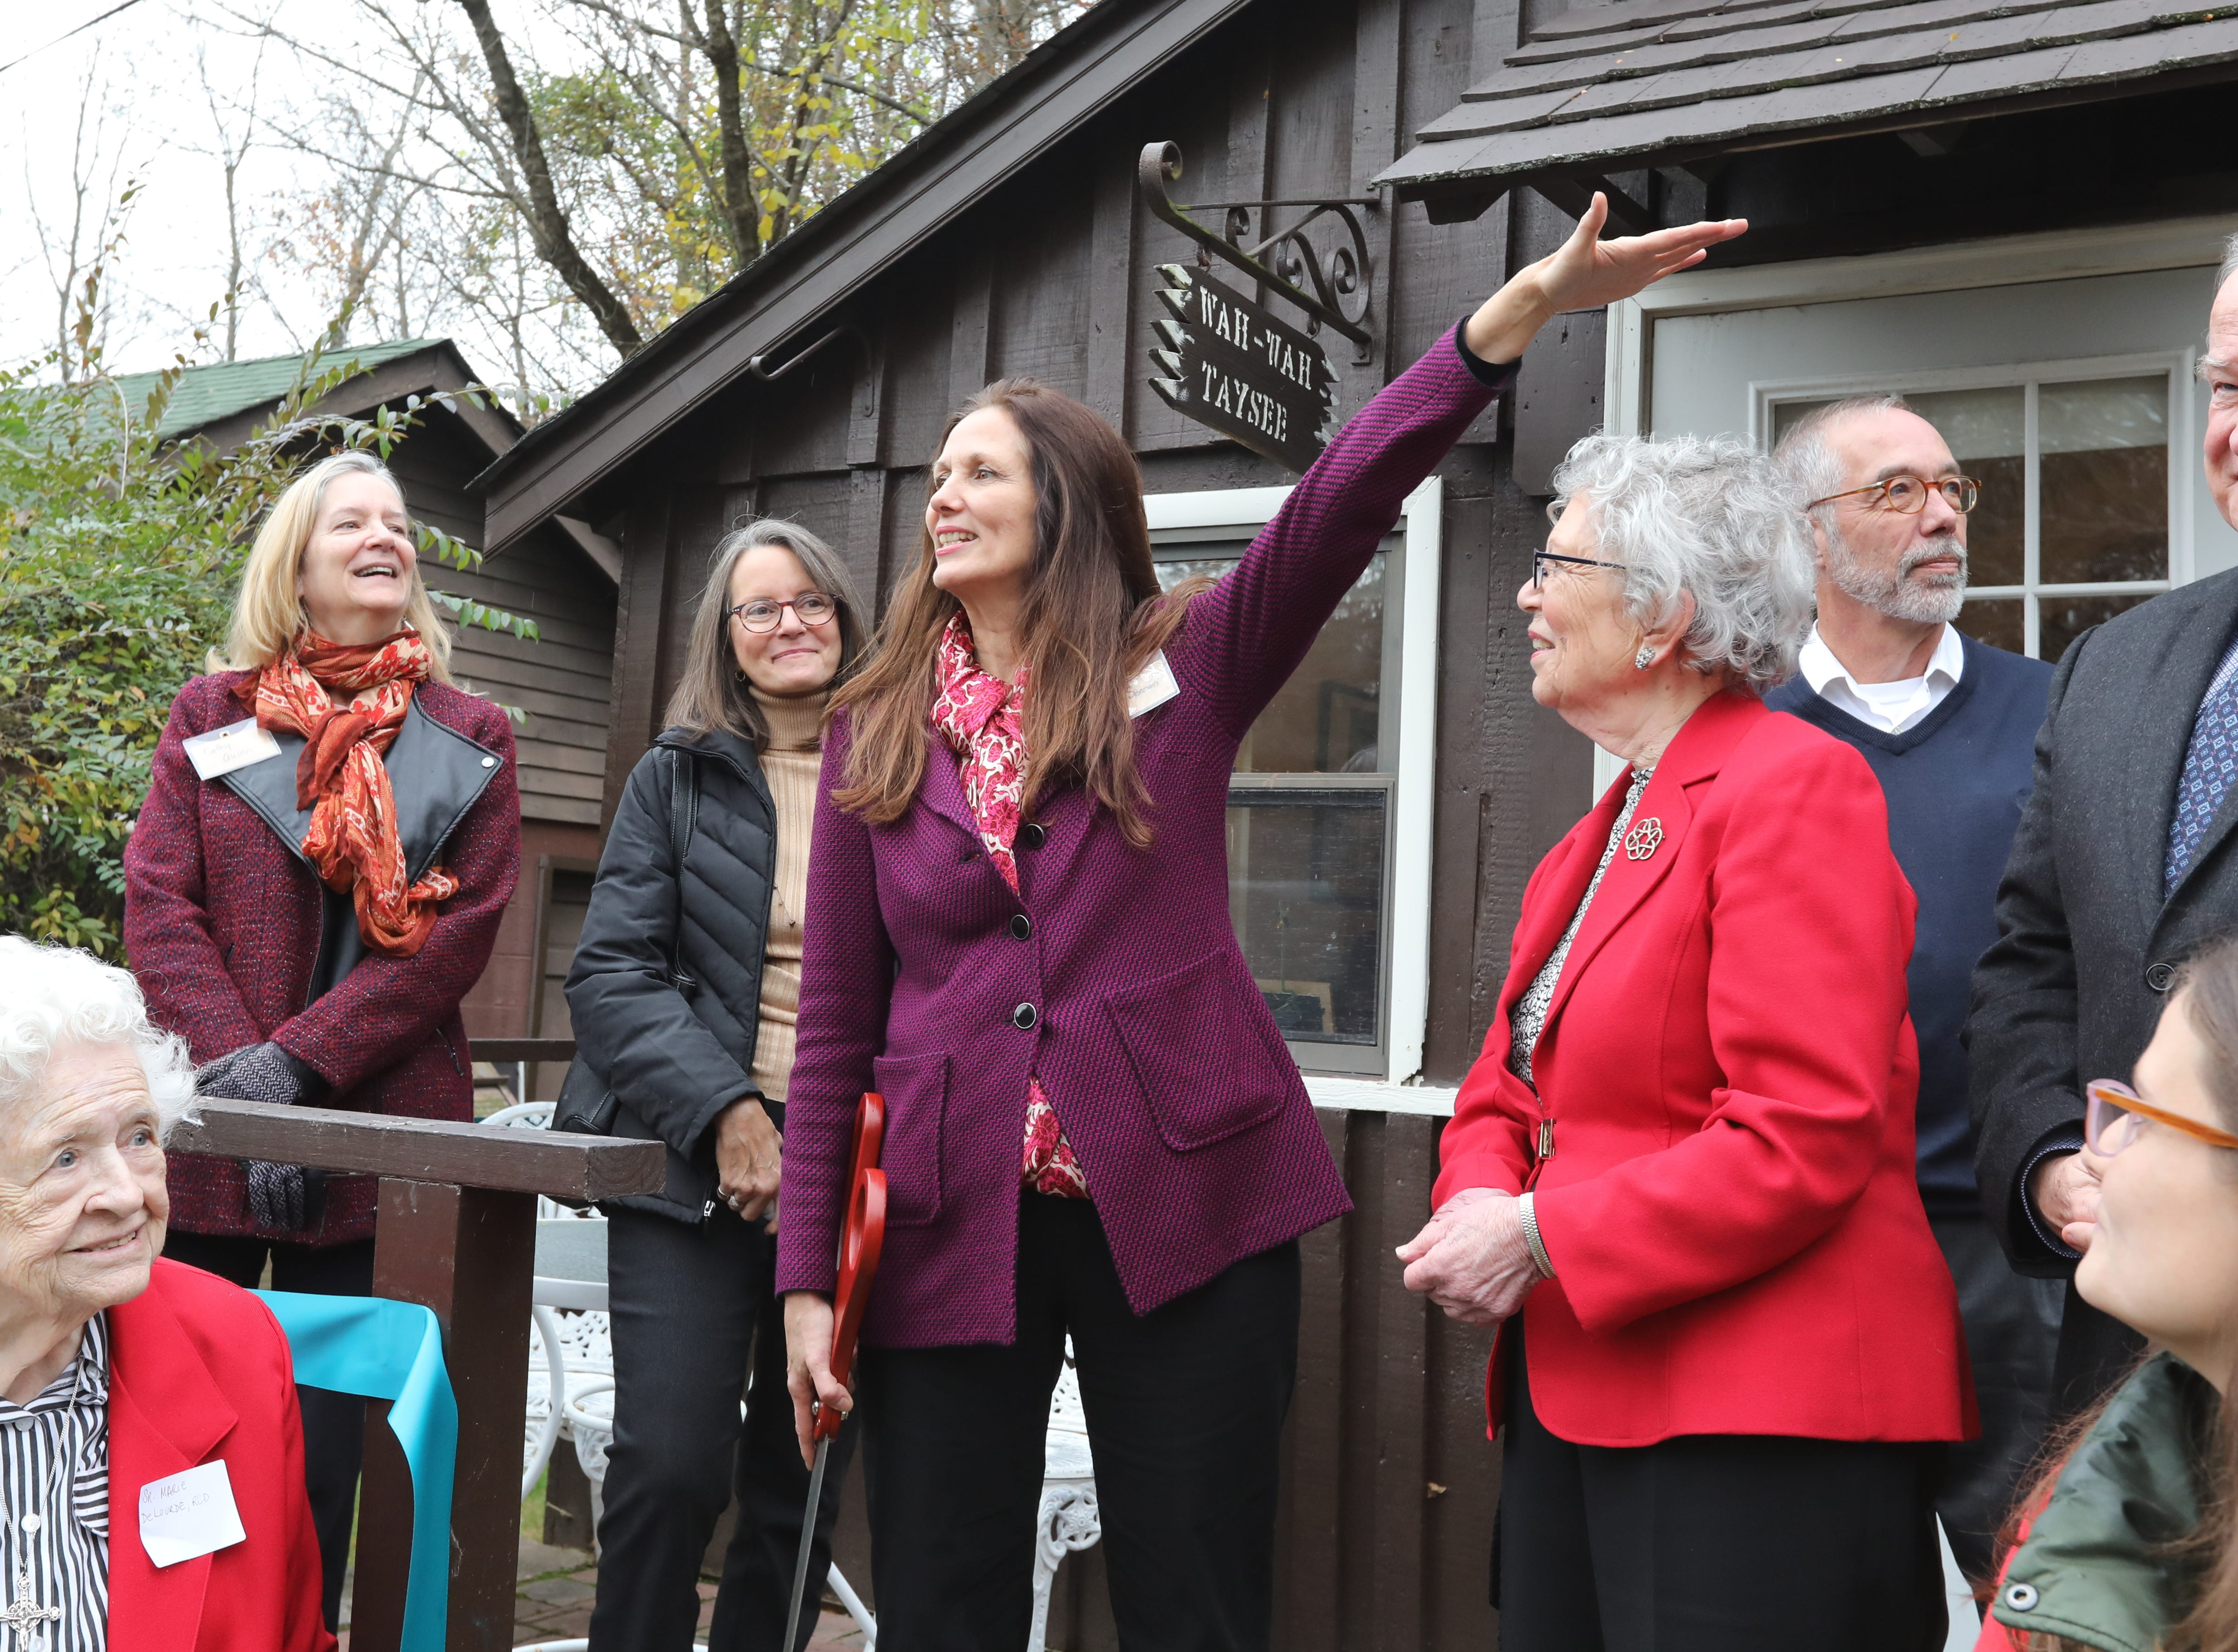 An opening ceremony was held at Strawtown Studio's new home at the Marydell Faith and Life Center in Nyack Nov. 9, 2018. Strawtown Studio runs arts and ecology programs for children and young adults.